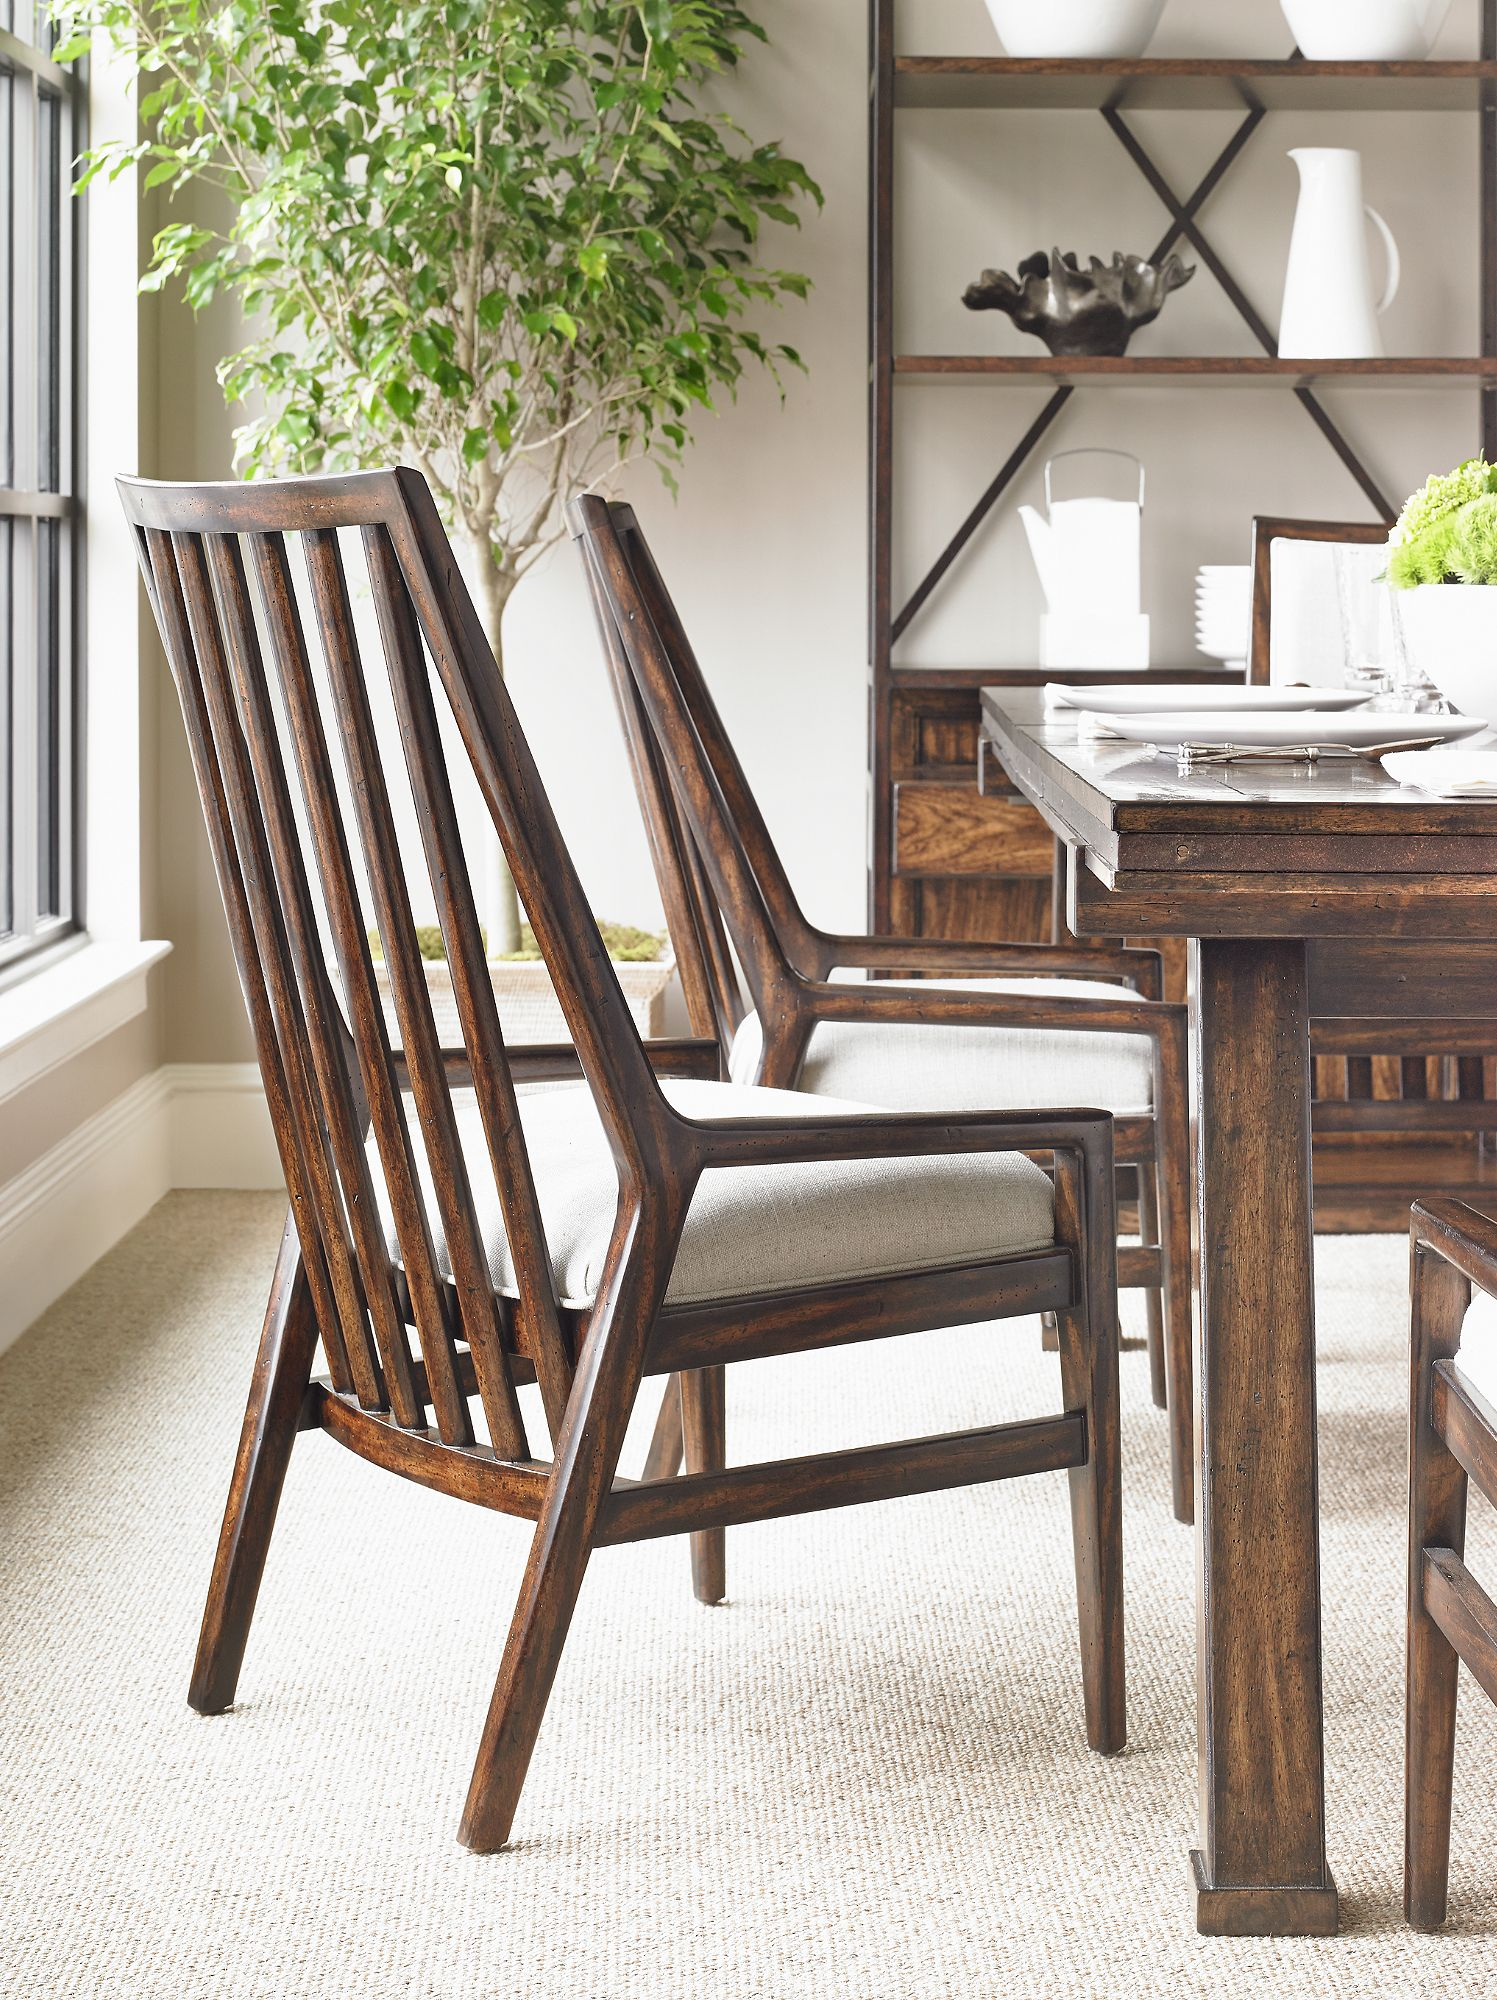 The Neutral Nubby Fawn Fabric On The Seat Of The Wood Back Chair Interesting Dining Room Chairs San Antonio 2018